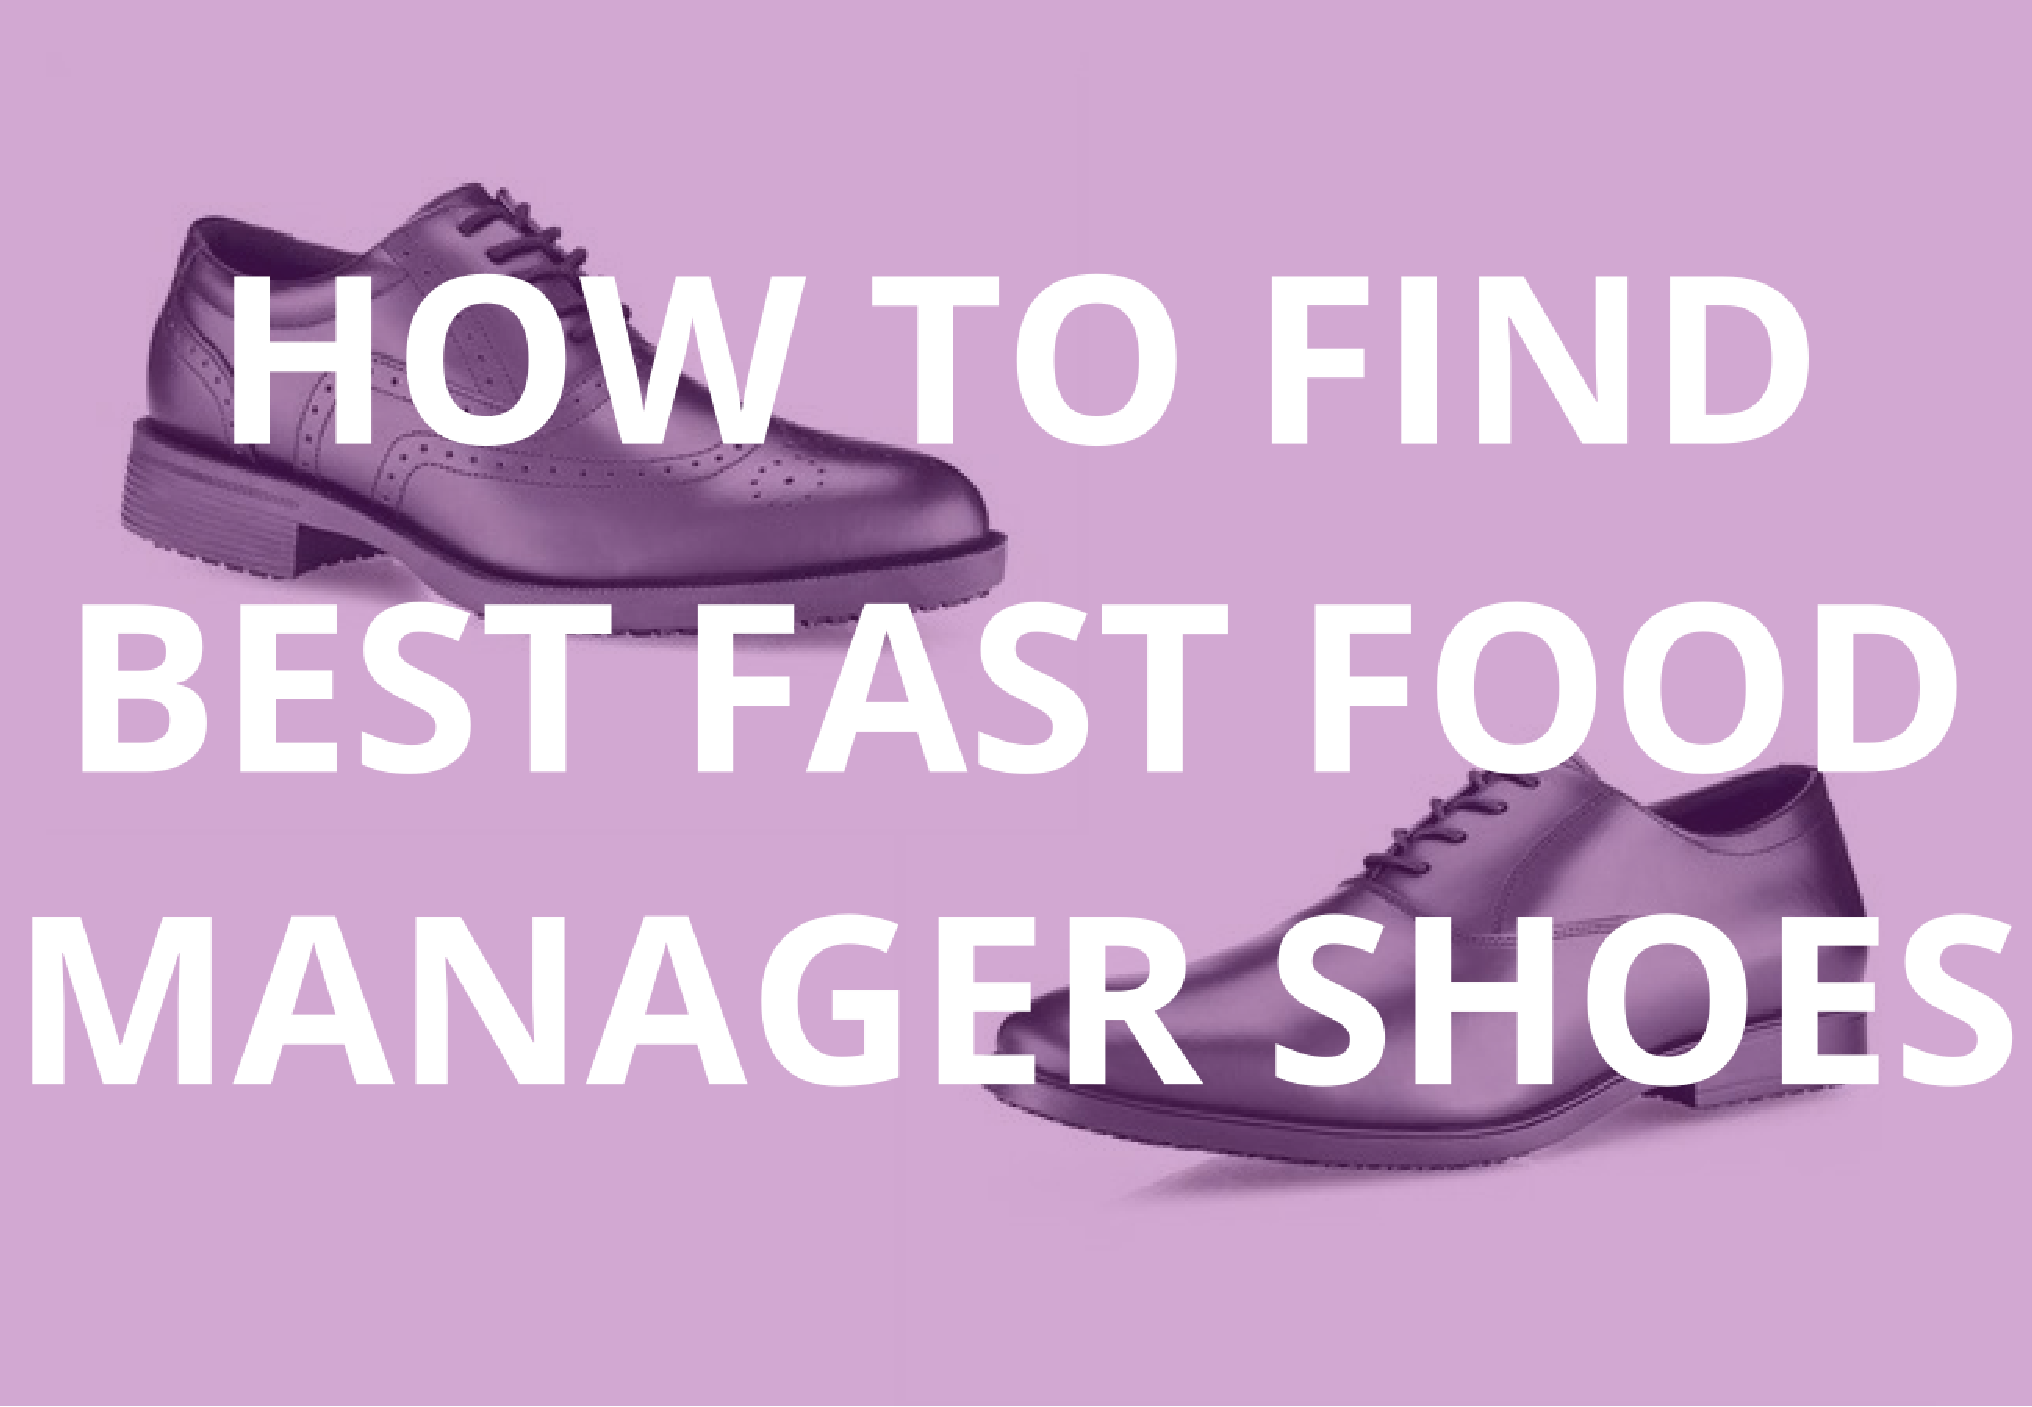 key questions to ask before buying fast food manager shoes